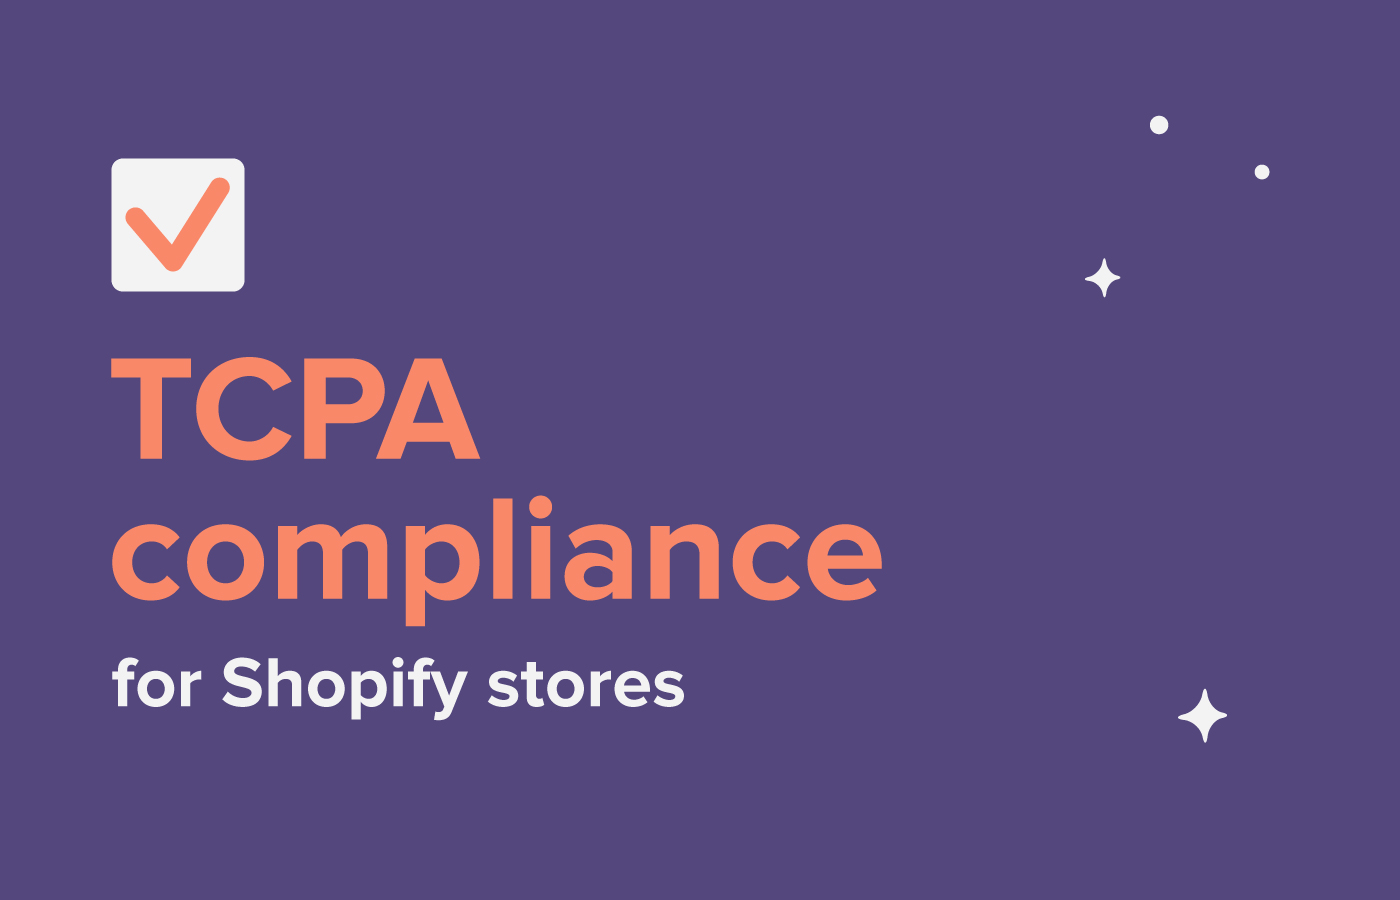 How does the TCPA affect your Shopify business?